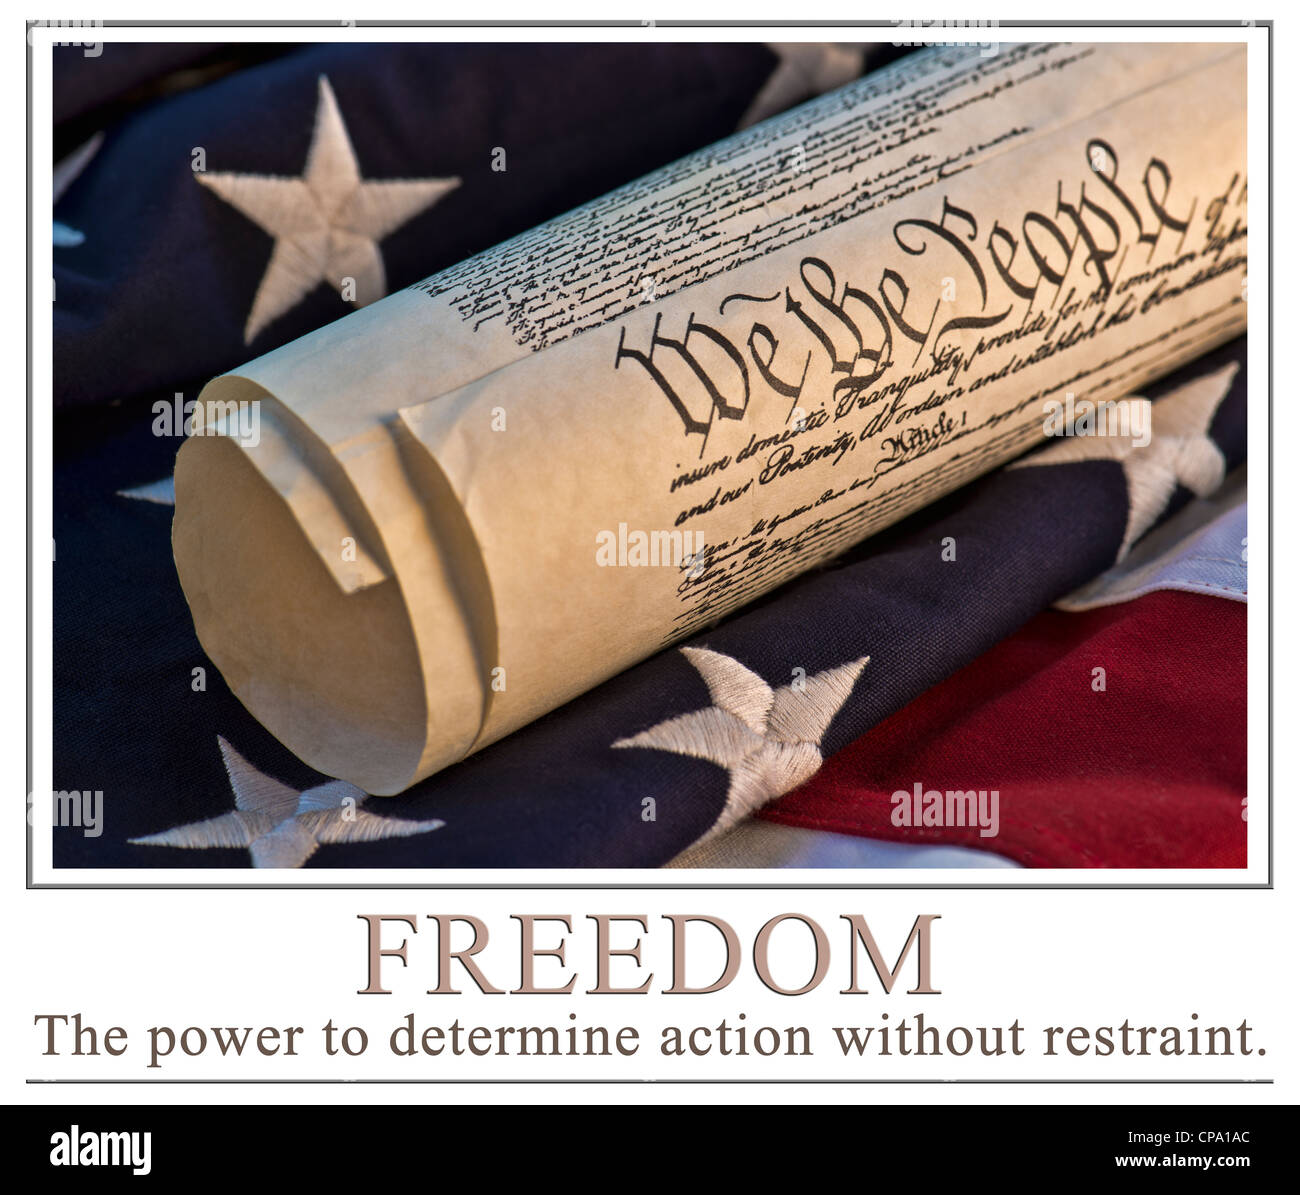 U.S. Constitution atop an American flag background. The words 'Freedom - the power to determine action without - Stock Image